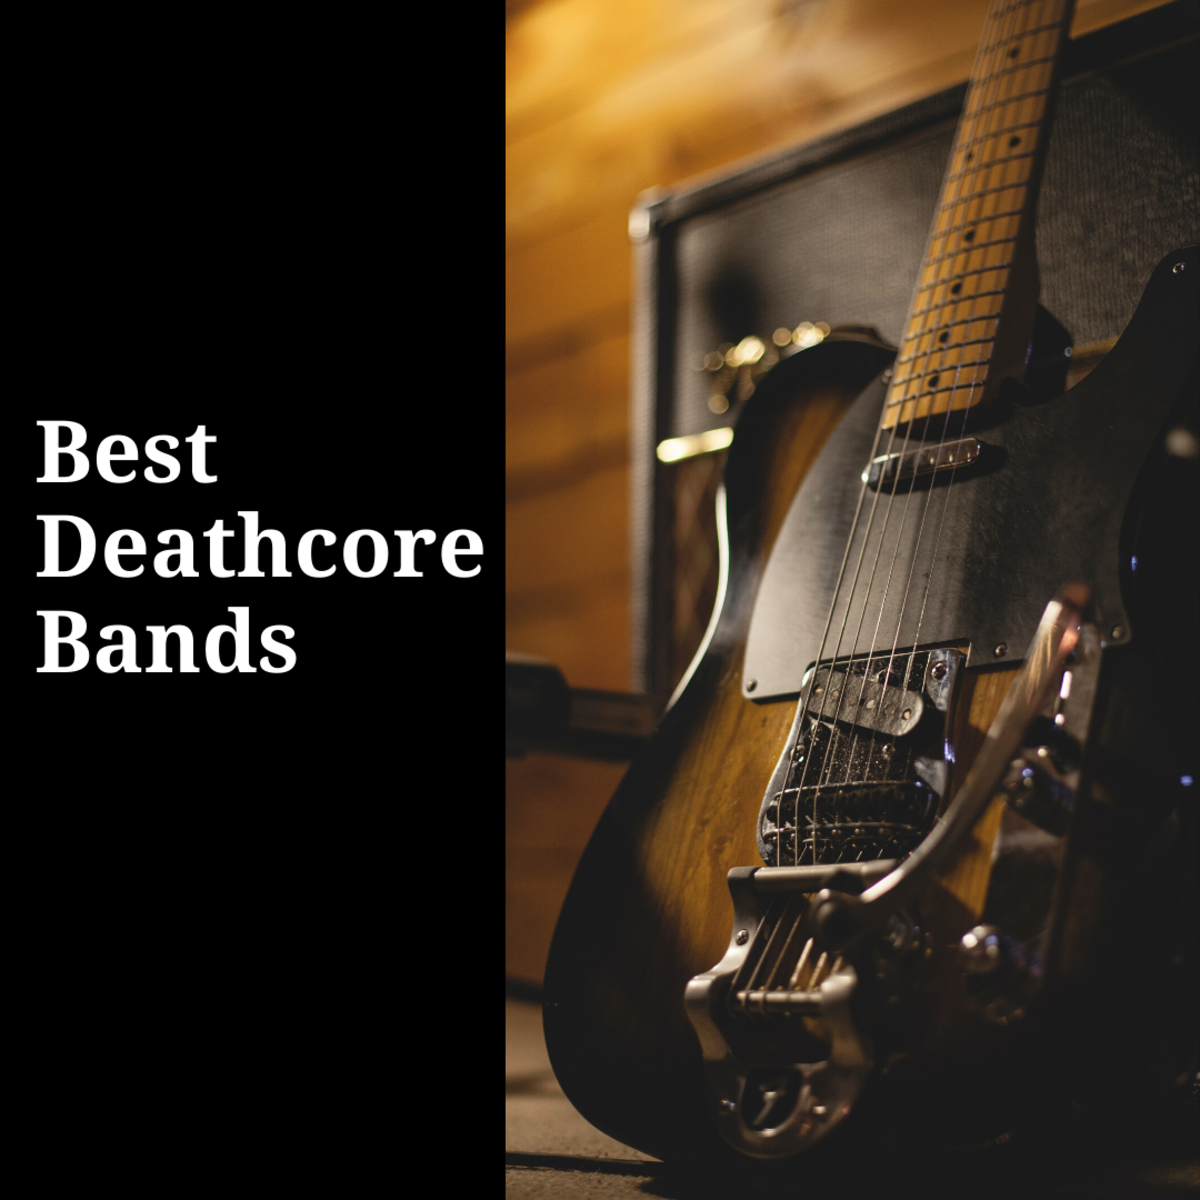 100 Best Deathcore Bands